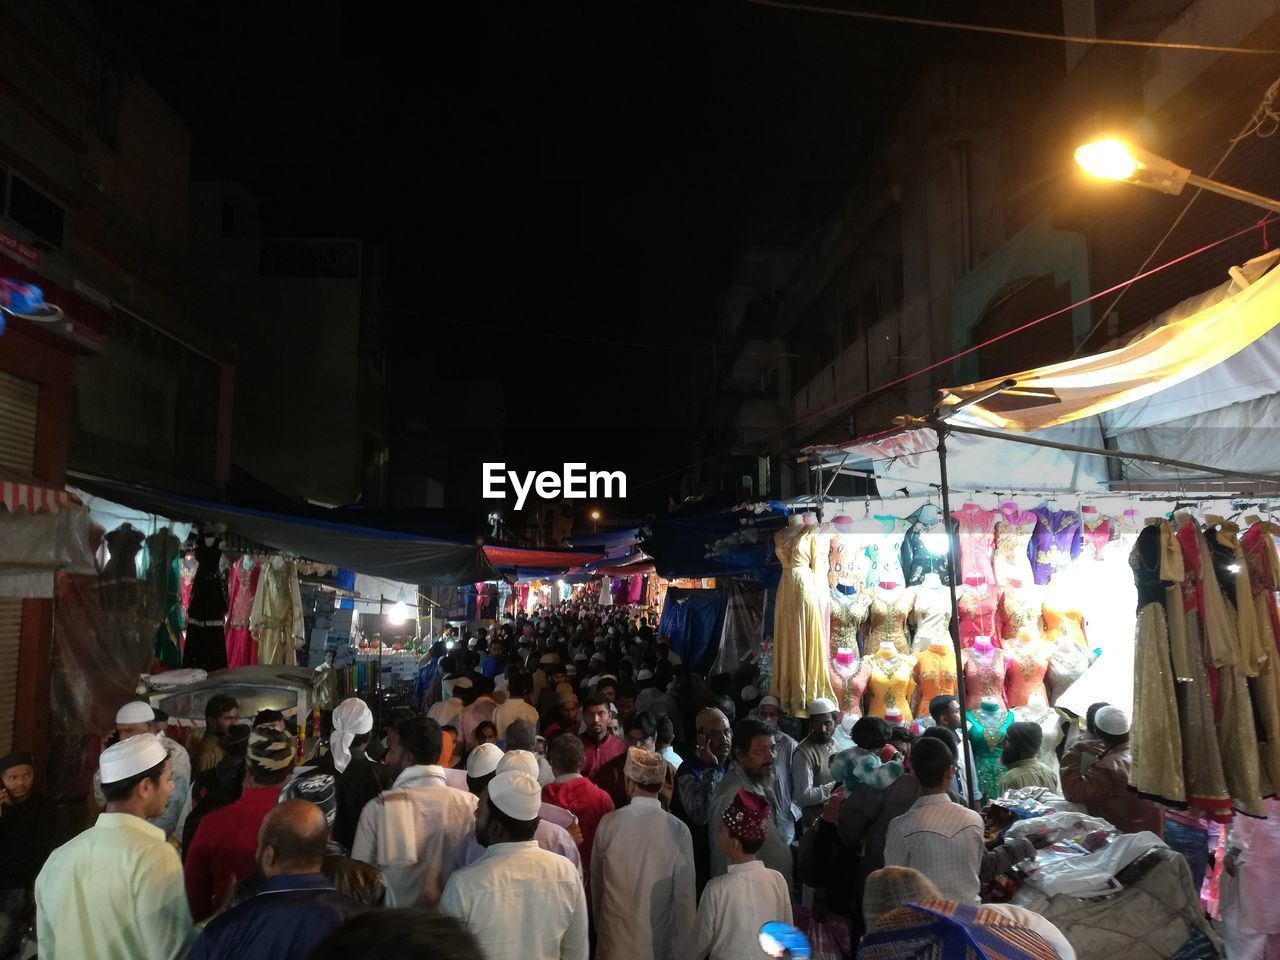 illuminated, market, crowd, retail, real people, market stall, night, city, large group of people, street, architecture, group of people, built structure, women, shopping, building exterior, adult, choice, men, store, street market, consumerism, light, bazaar, busy